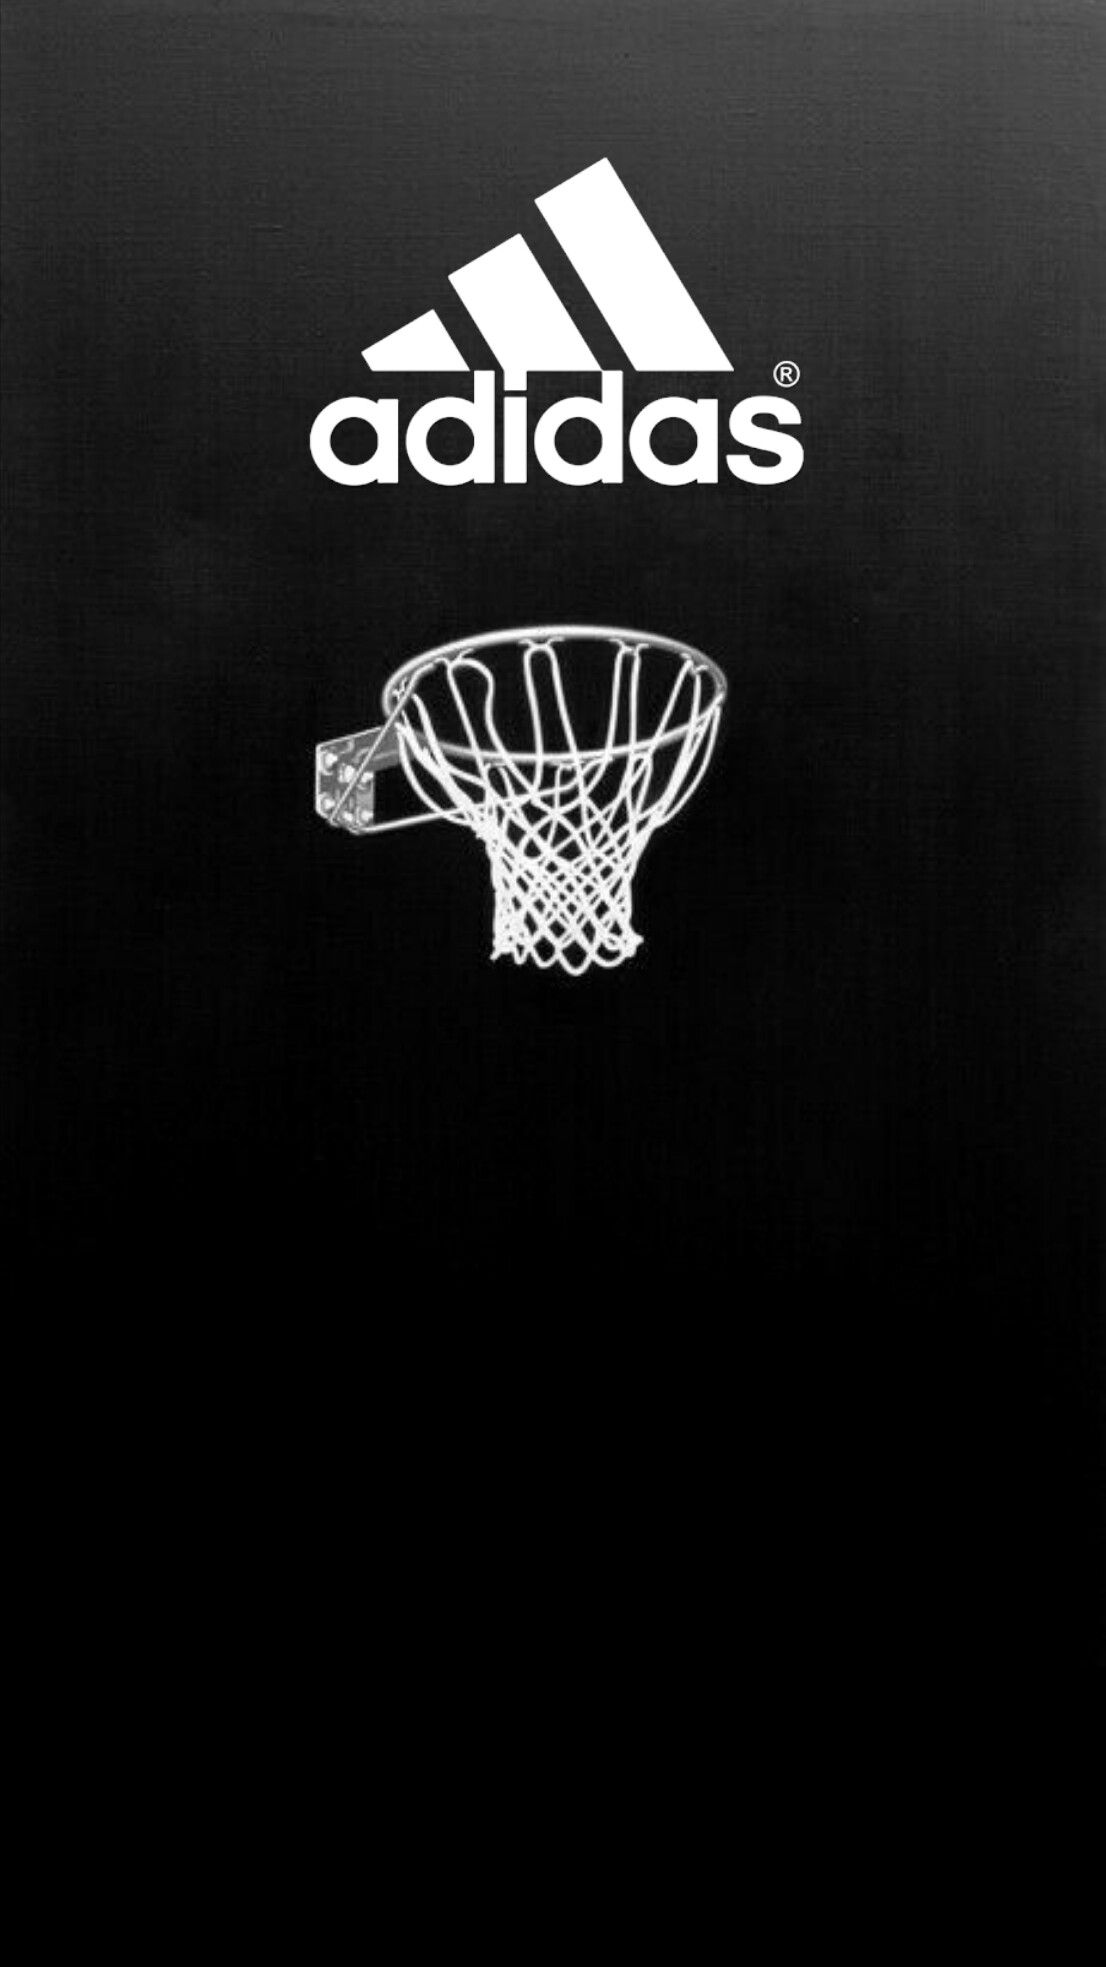 Adidas Basketball Wallpaper Android Iphone Ios Adidas